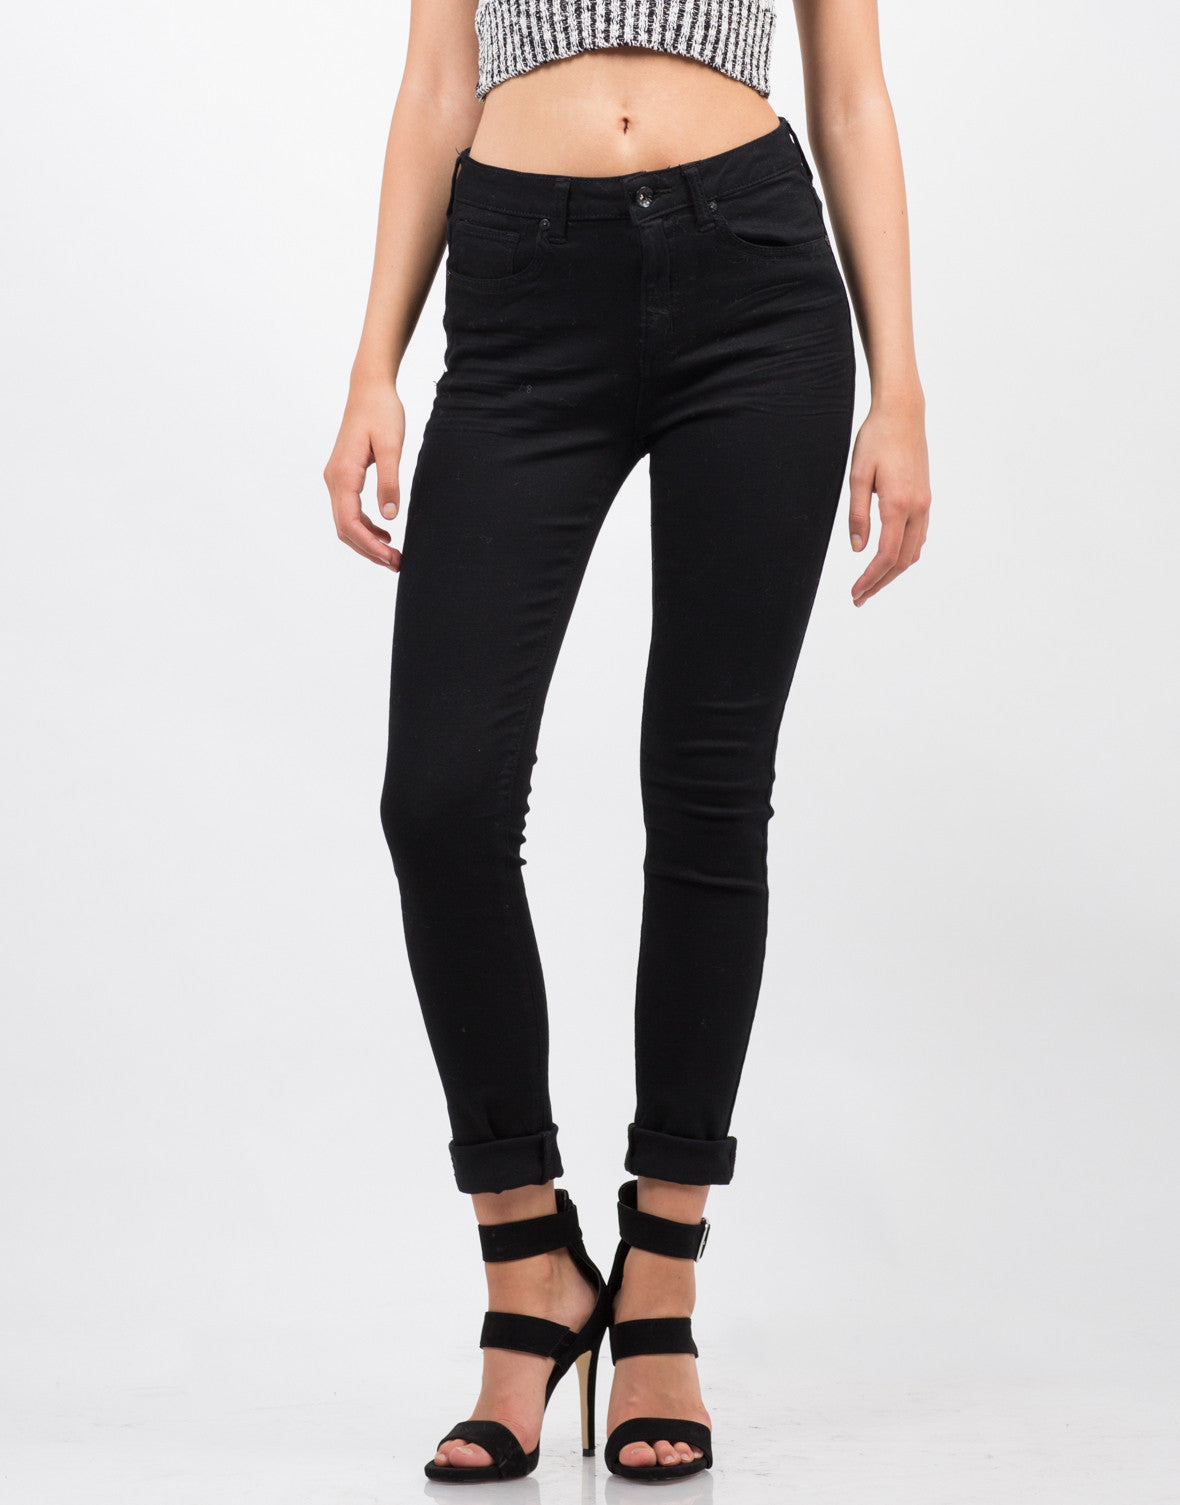 Front View of Classic Black Skinny Jeans